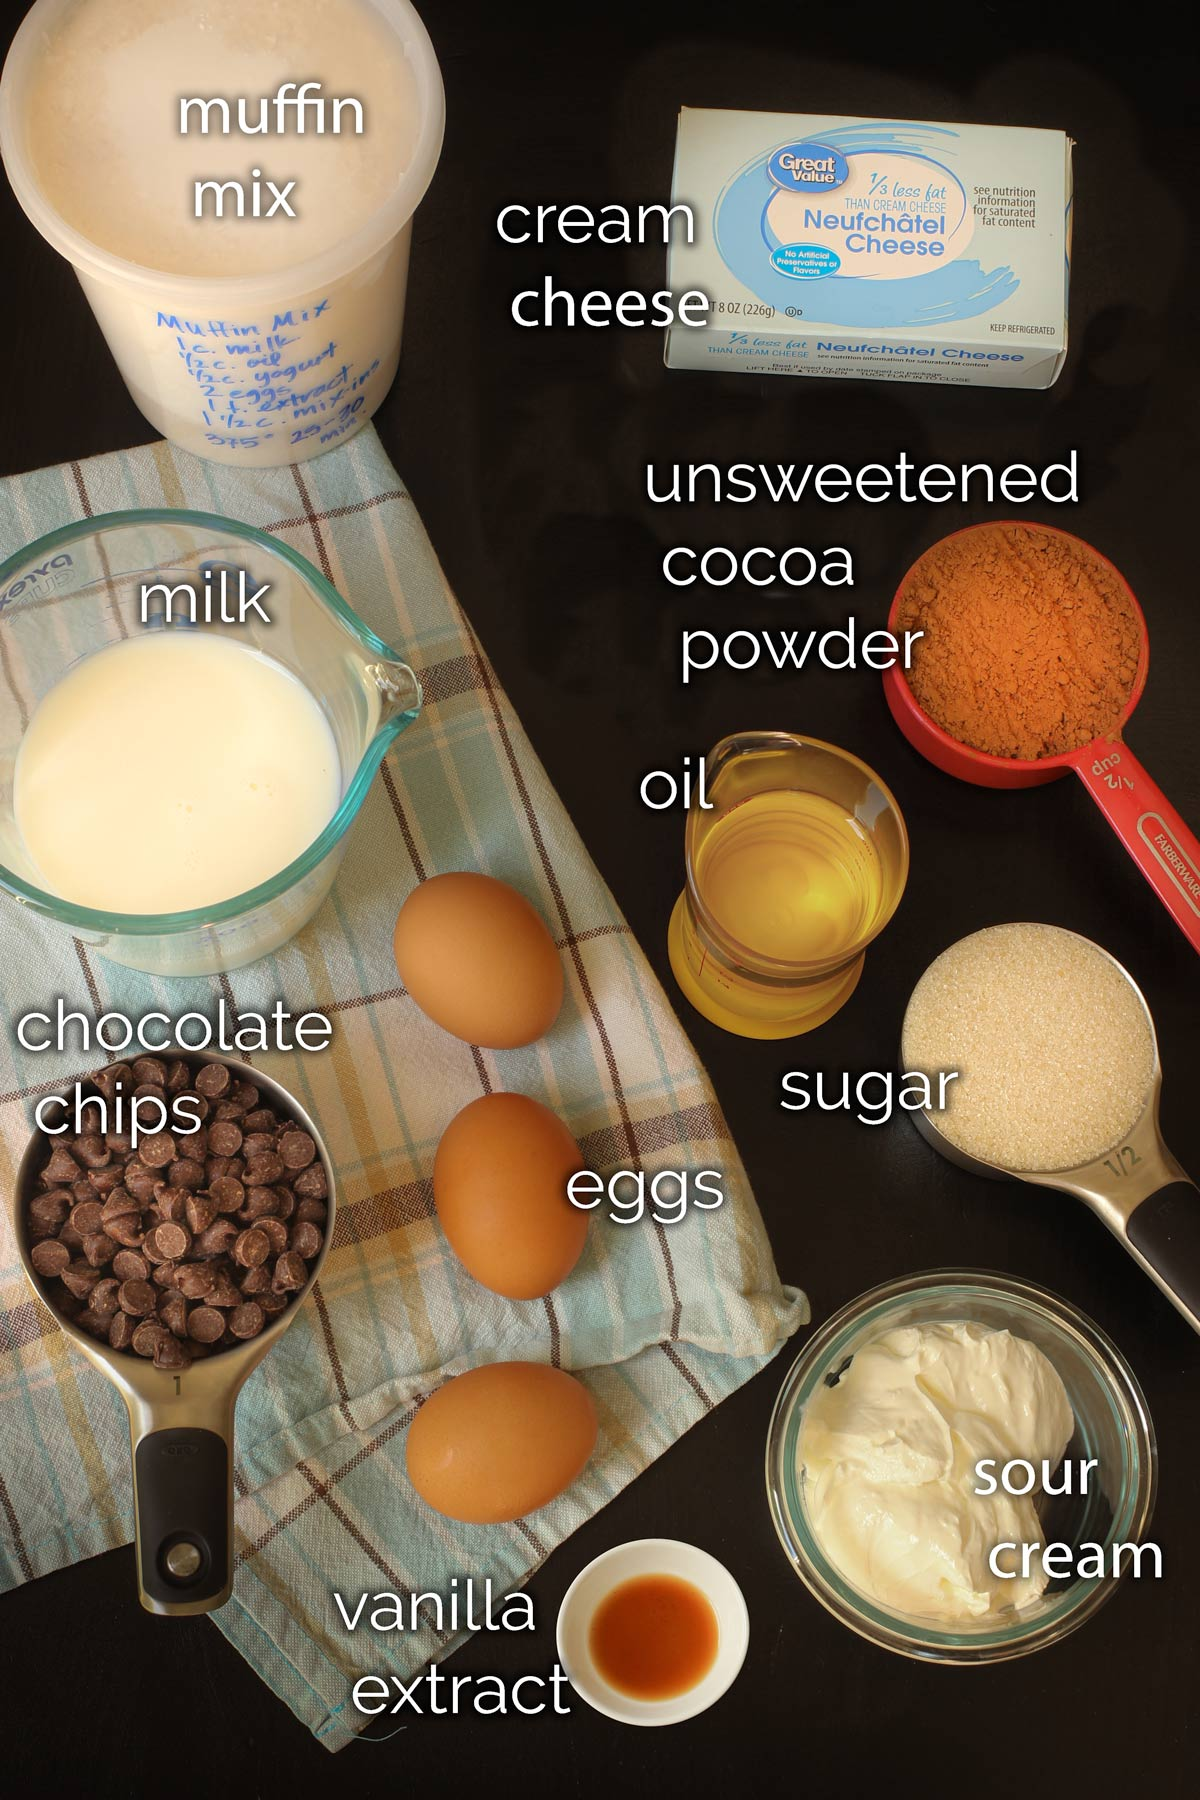 ingredients for chocolate cream cheese muffins laid out on table.